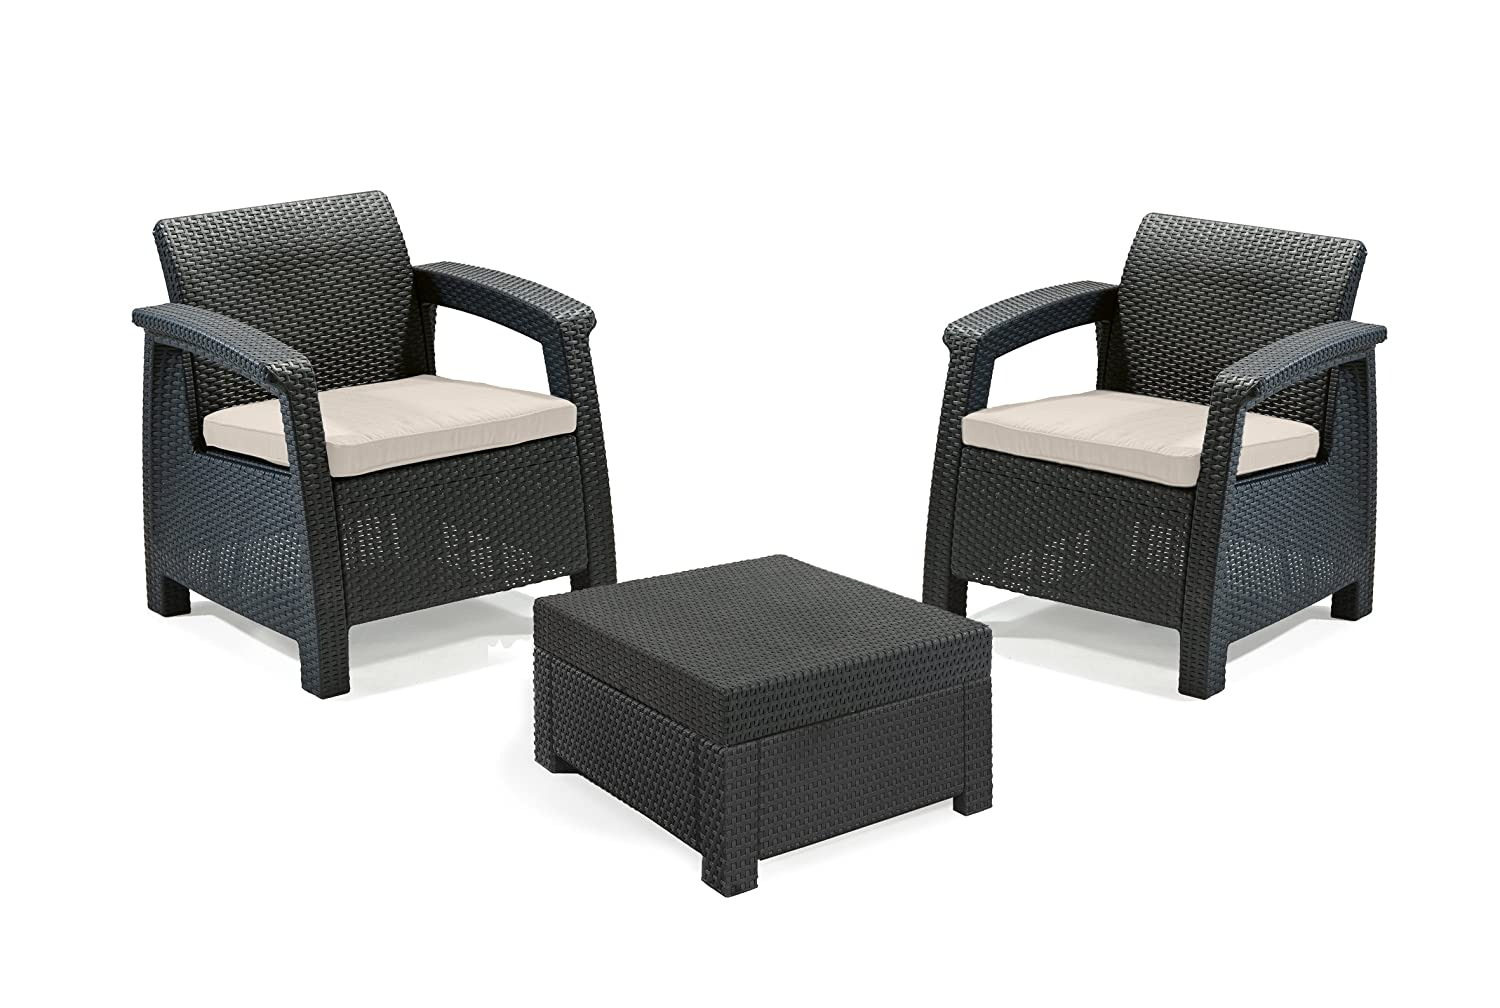 keter lounge set corfu balcony grau g nstig kaufen. Black Bedroom Furniture Sets. Home Design Ideas